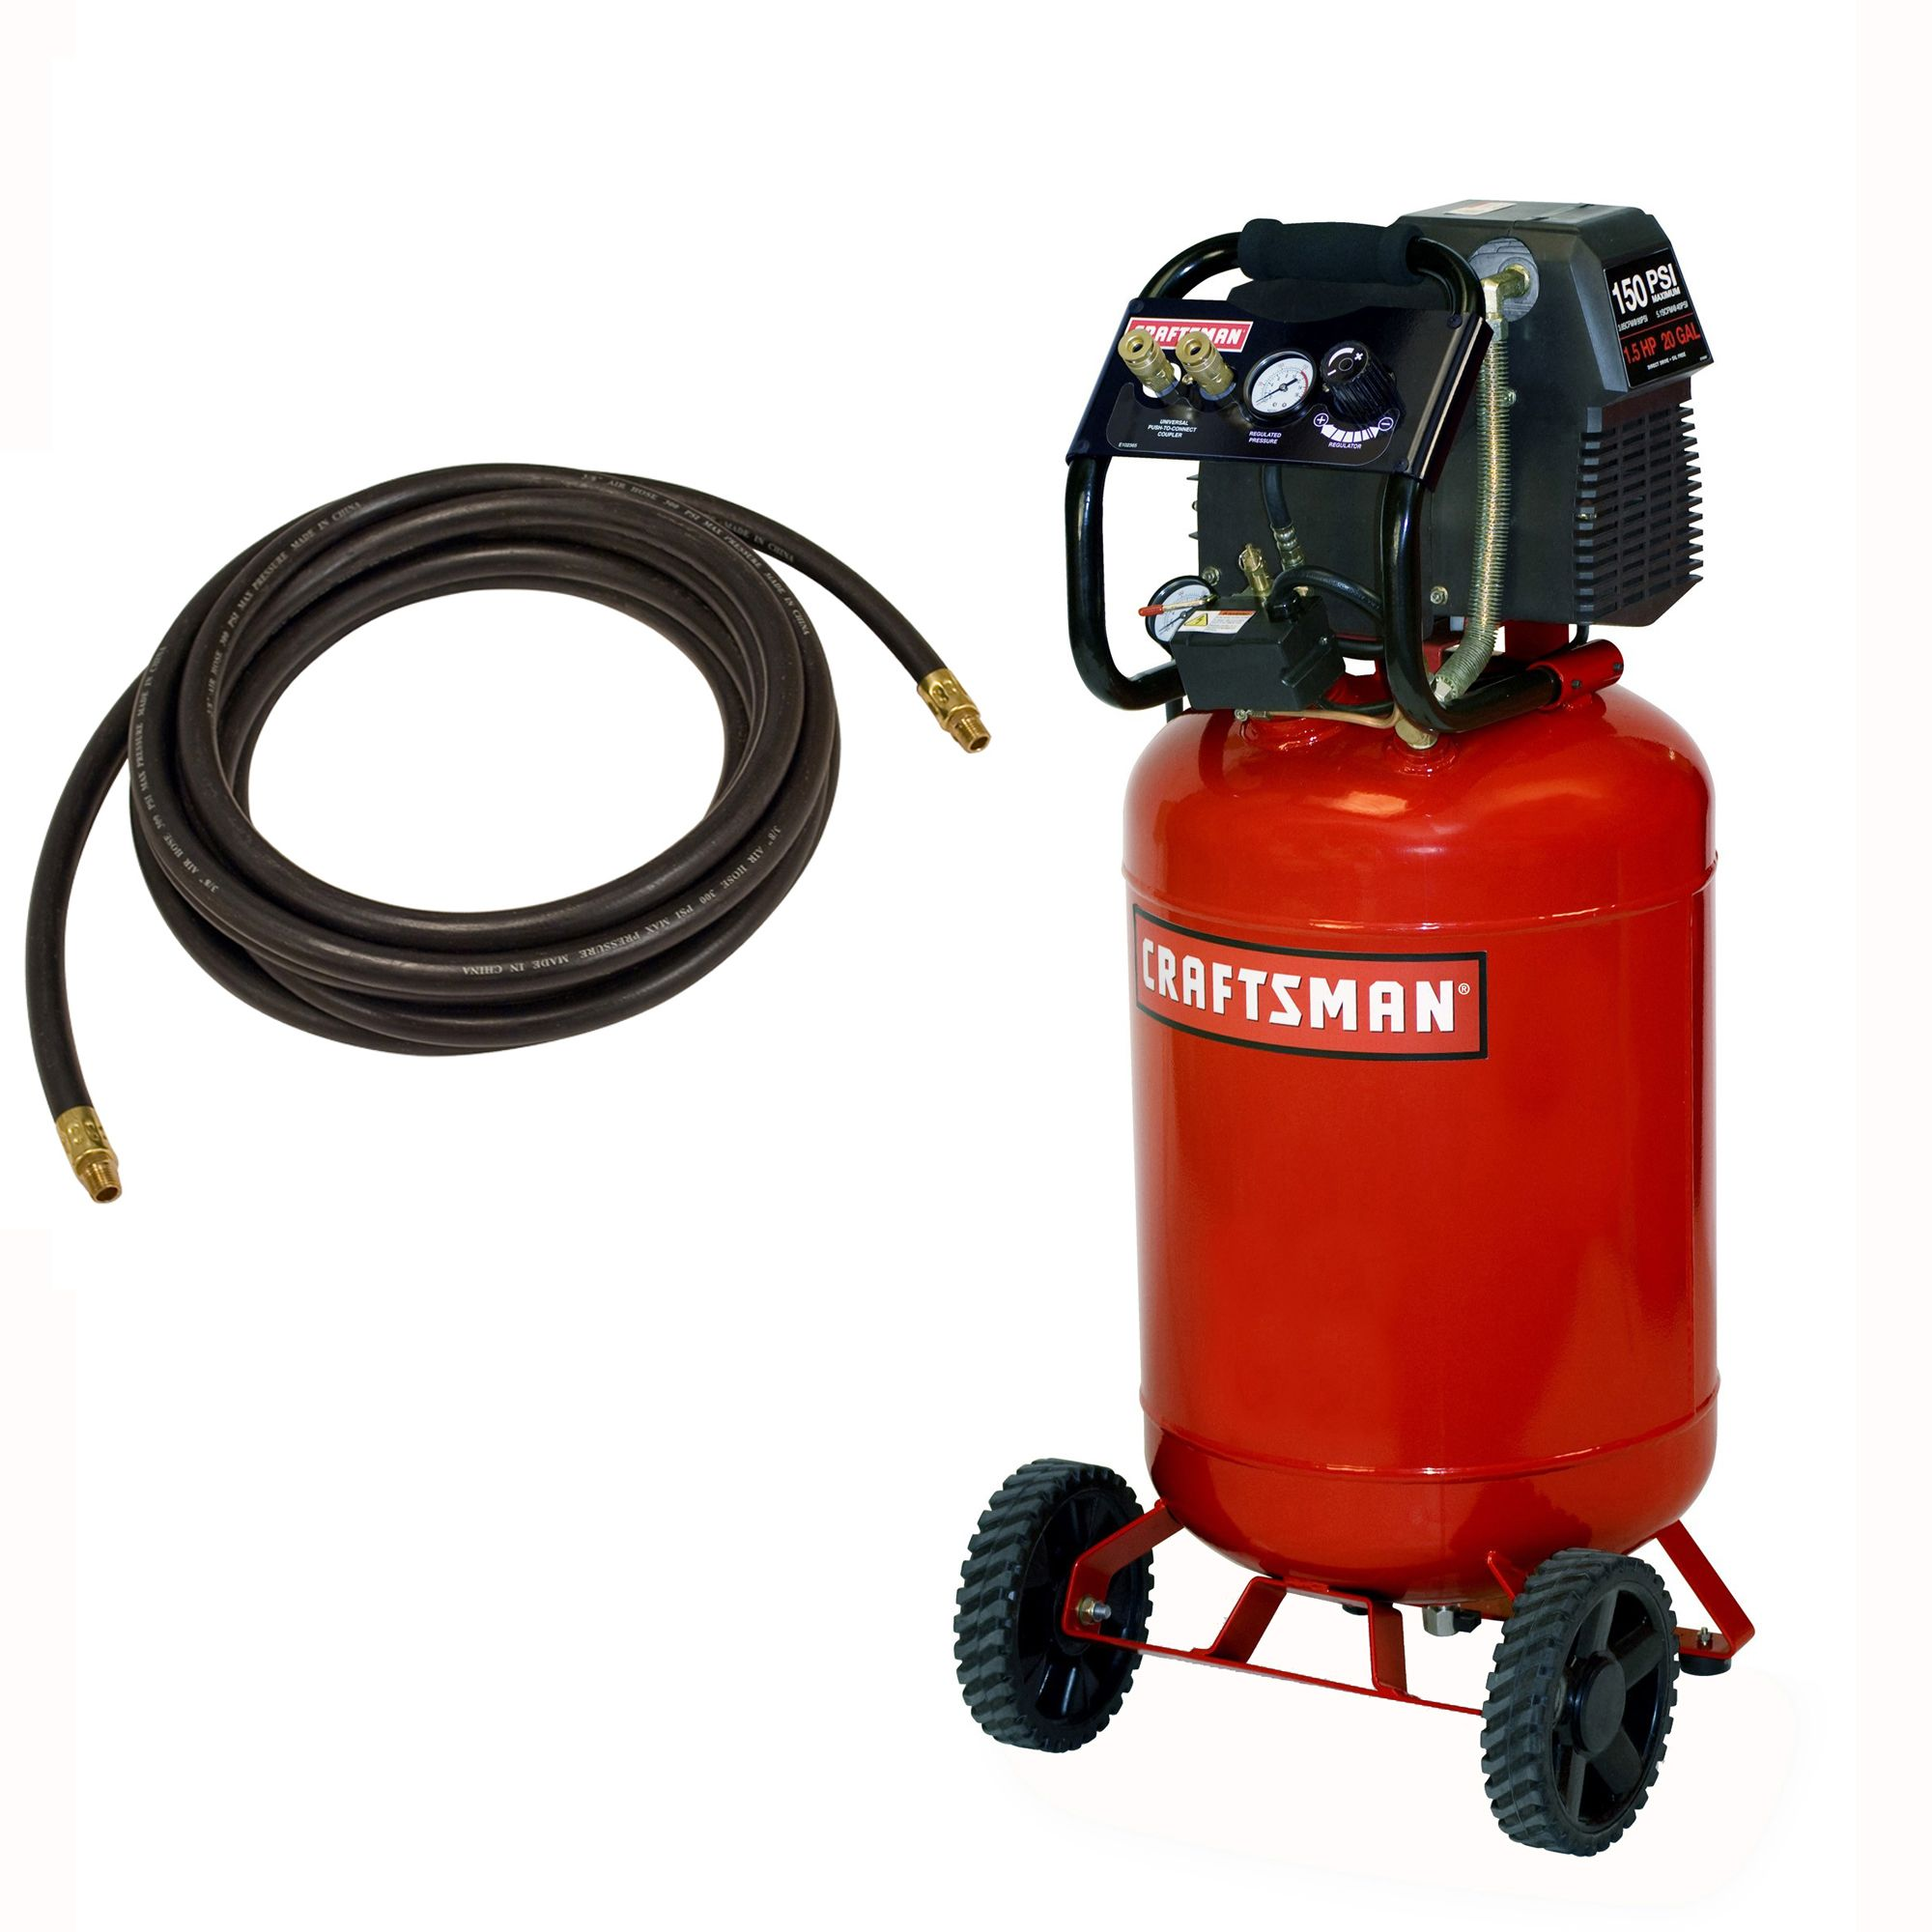 20 Gallon Portable Vertical Air Compressor